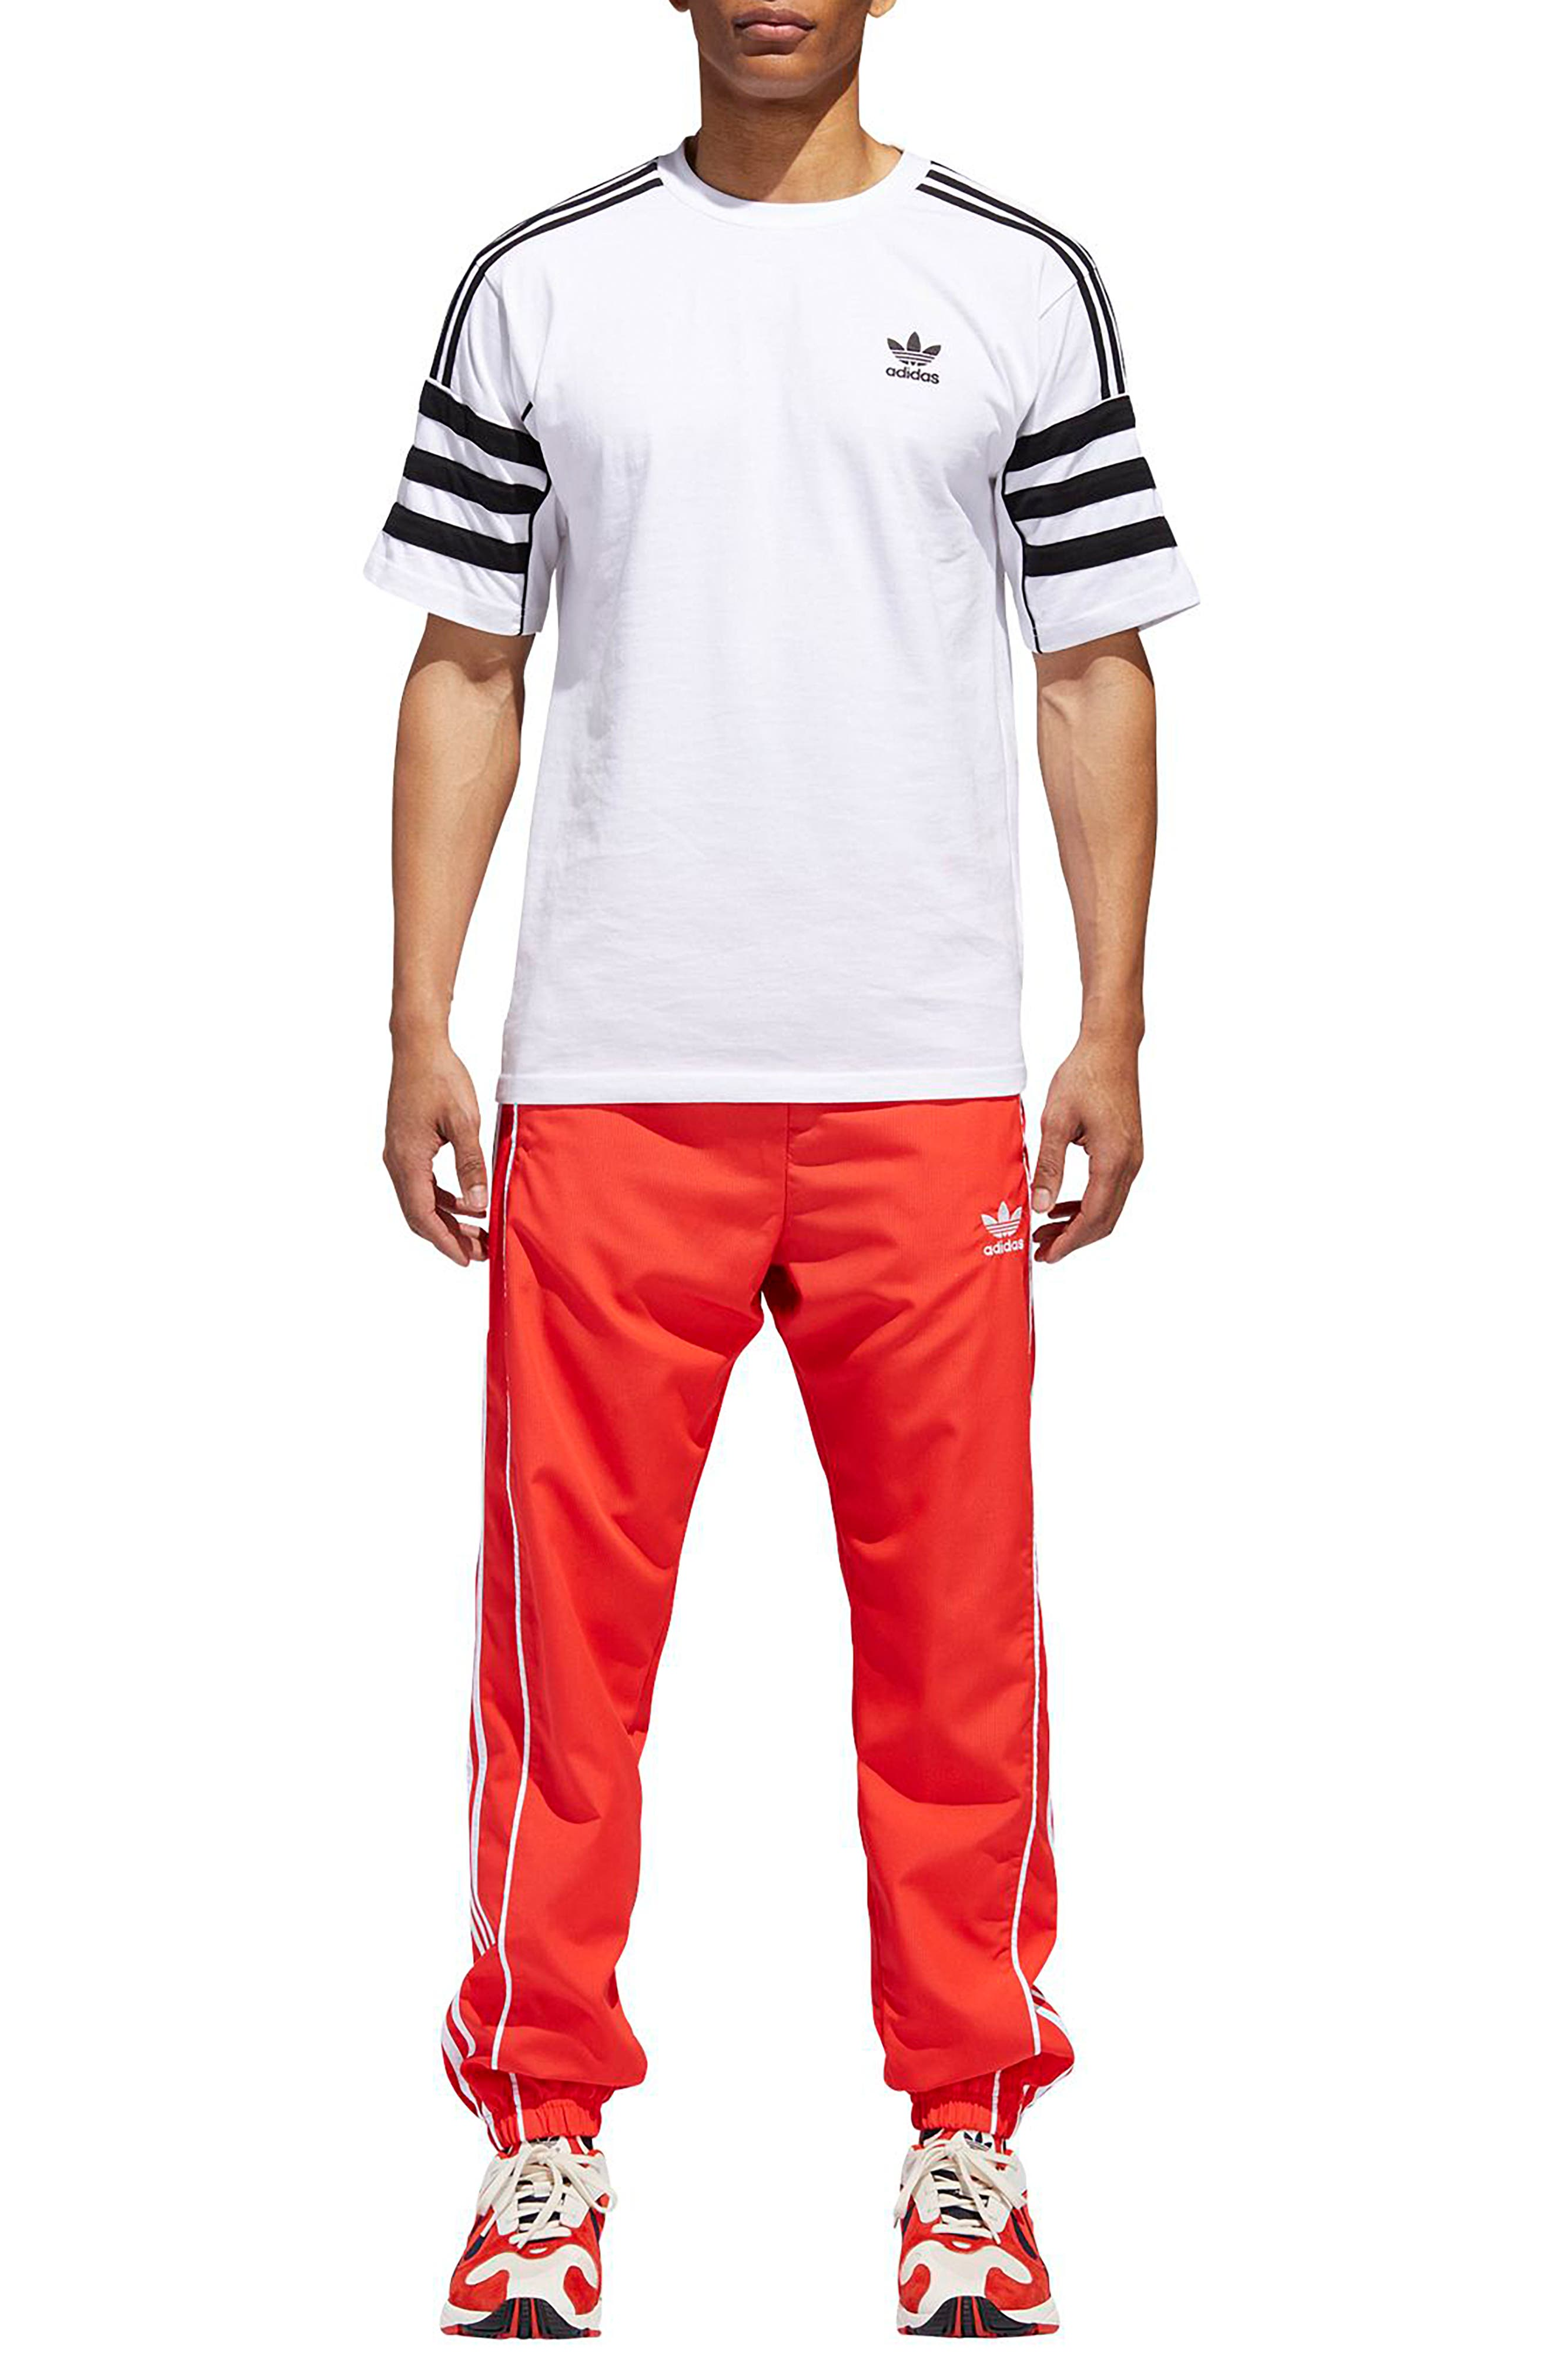 Authentics Ripstop Track Pants,                             Alternate thumbnail 7, color,                             HI-RES RED/ WHITE